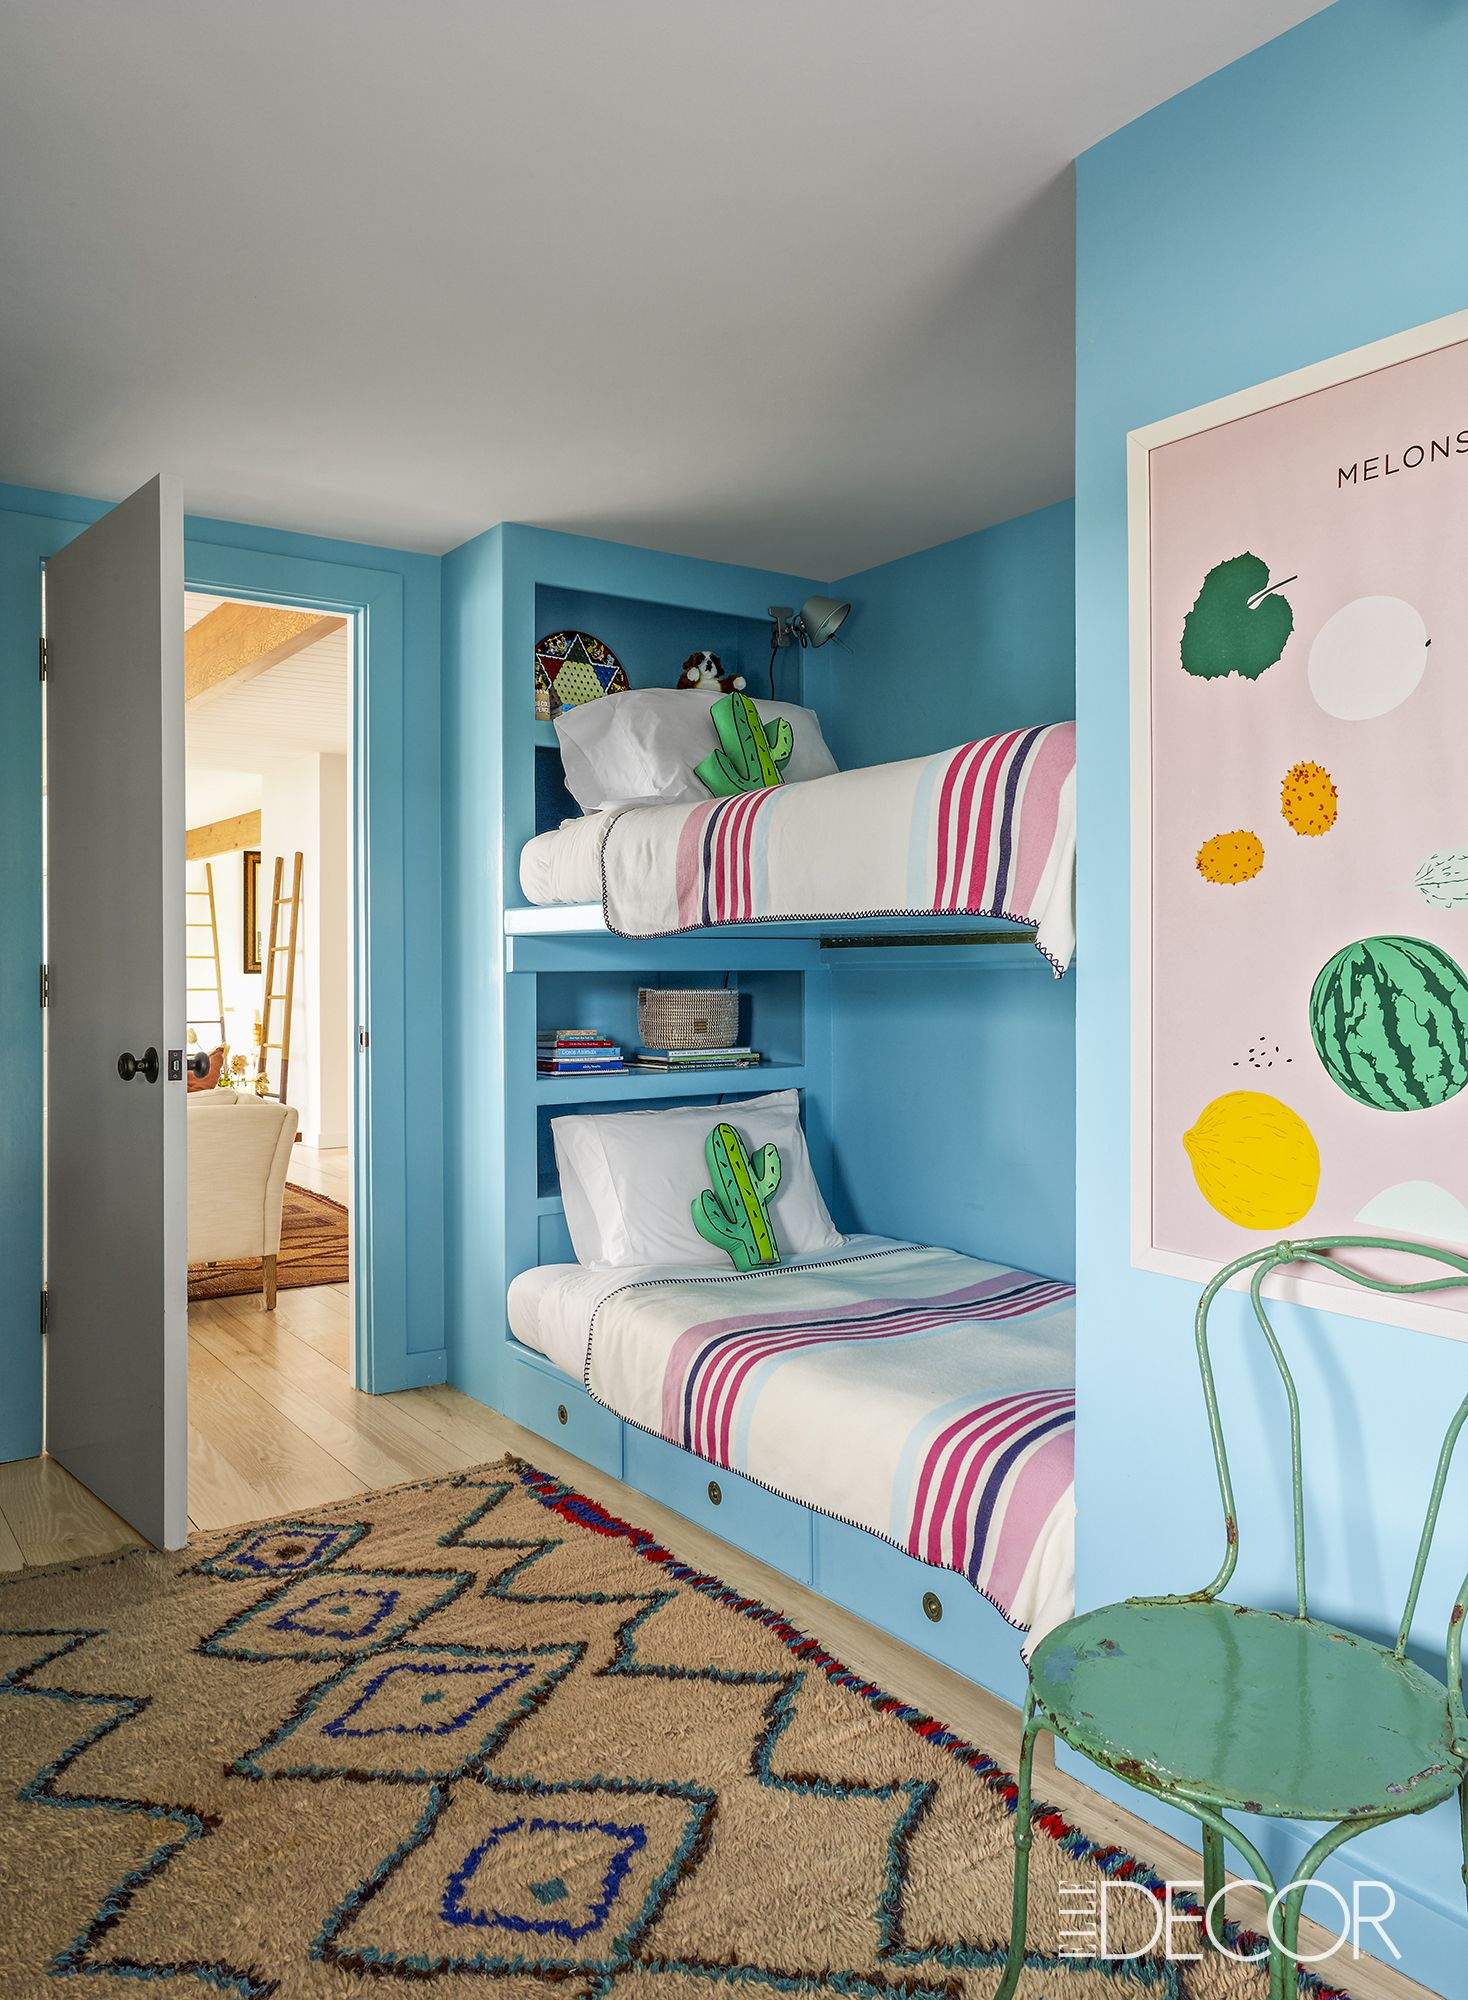 Kids Rooms 18 Cool Kids' Room Decorating Ideas  Kids Room Decor